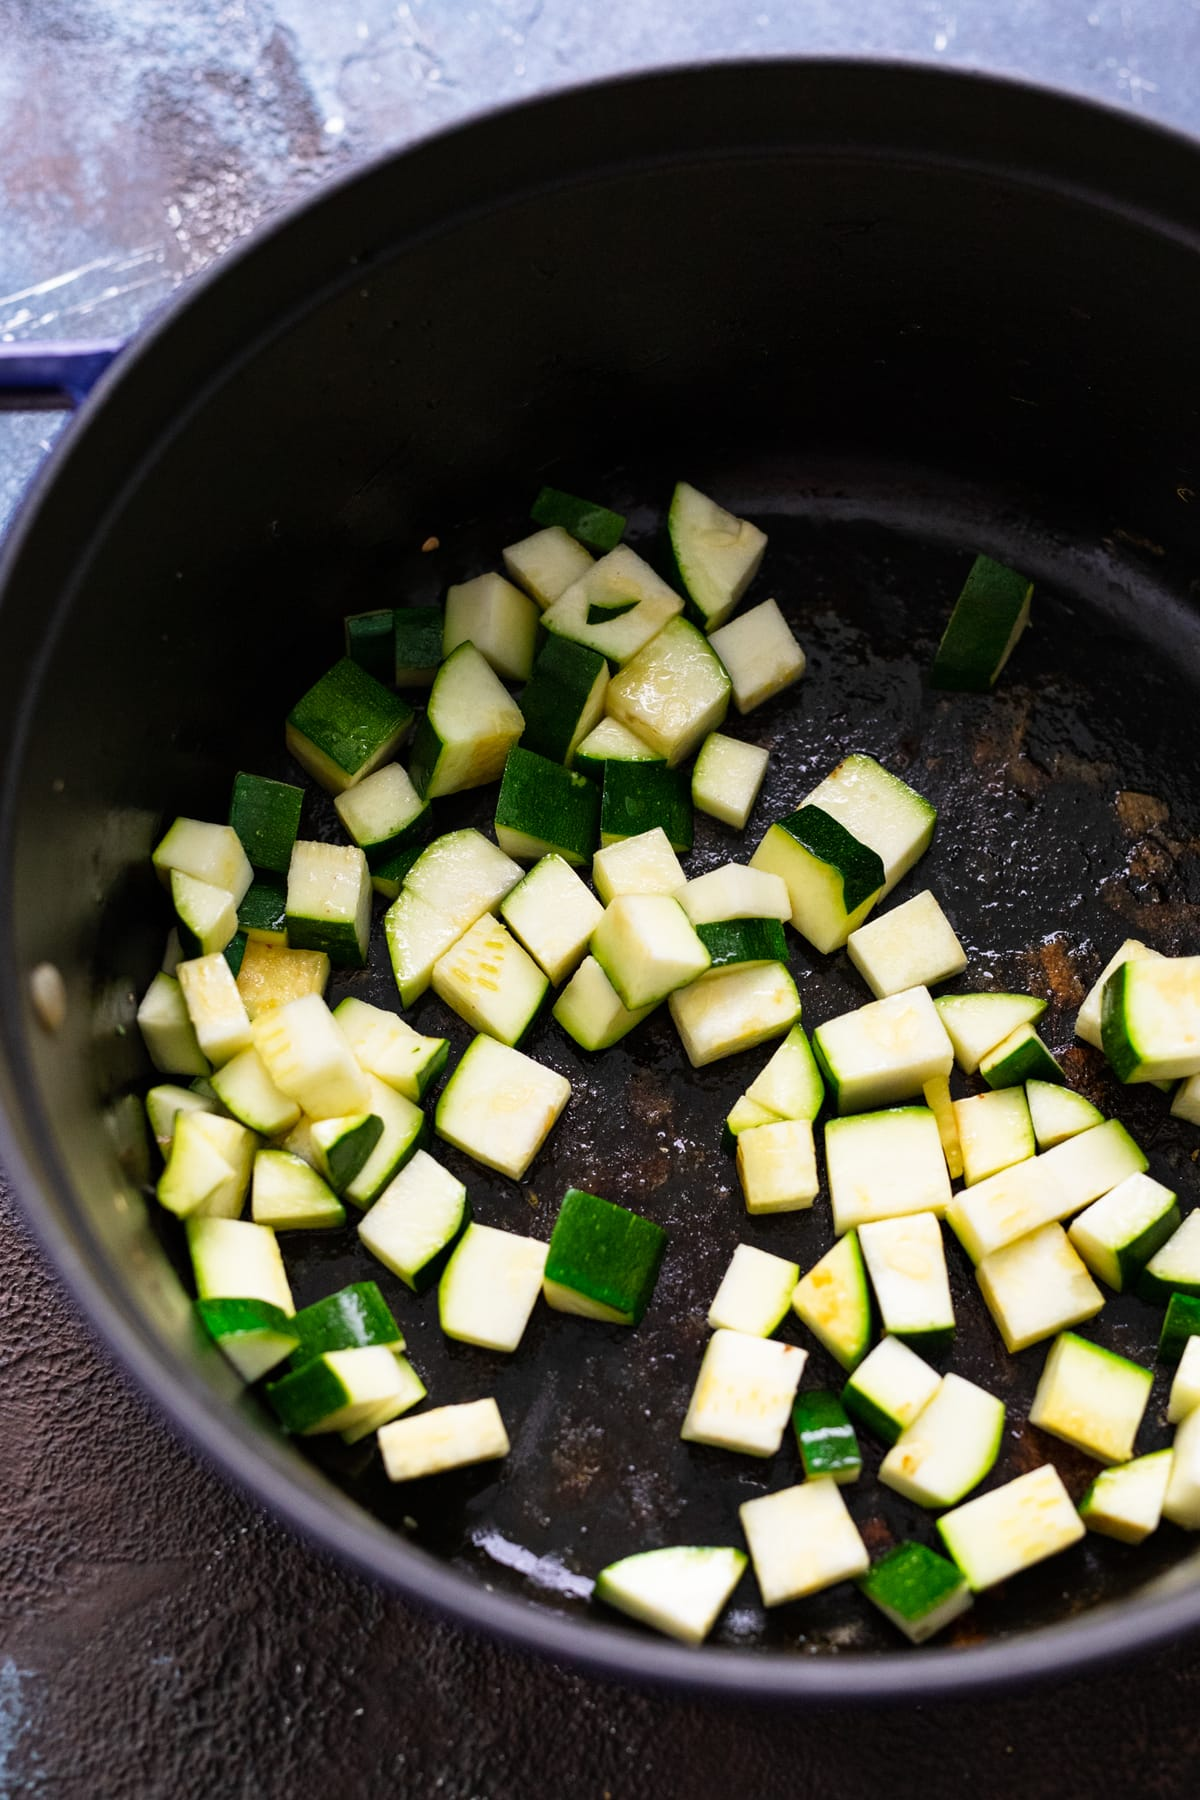 A black cast iron pot with cubed zucchini being sautéed in it.